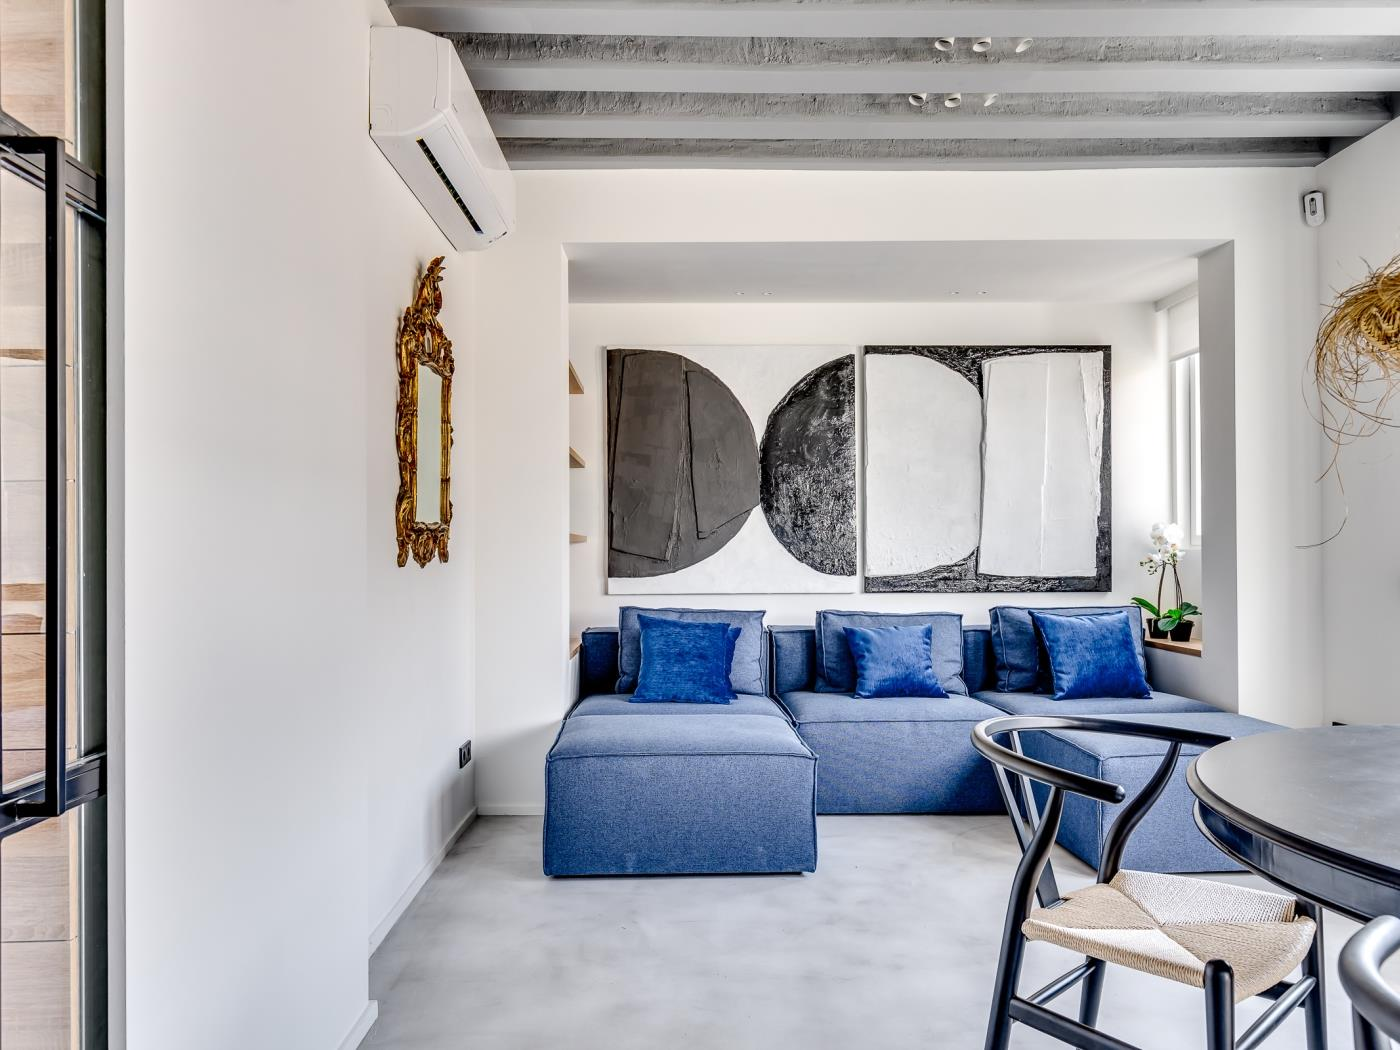 Luxurious apartment for long term rentals in the beach of La Barceloneta - My Space Barcelona Apartments